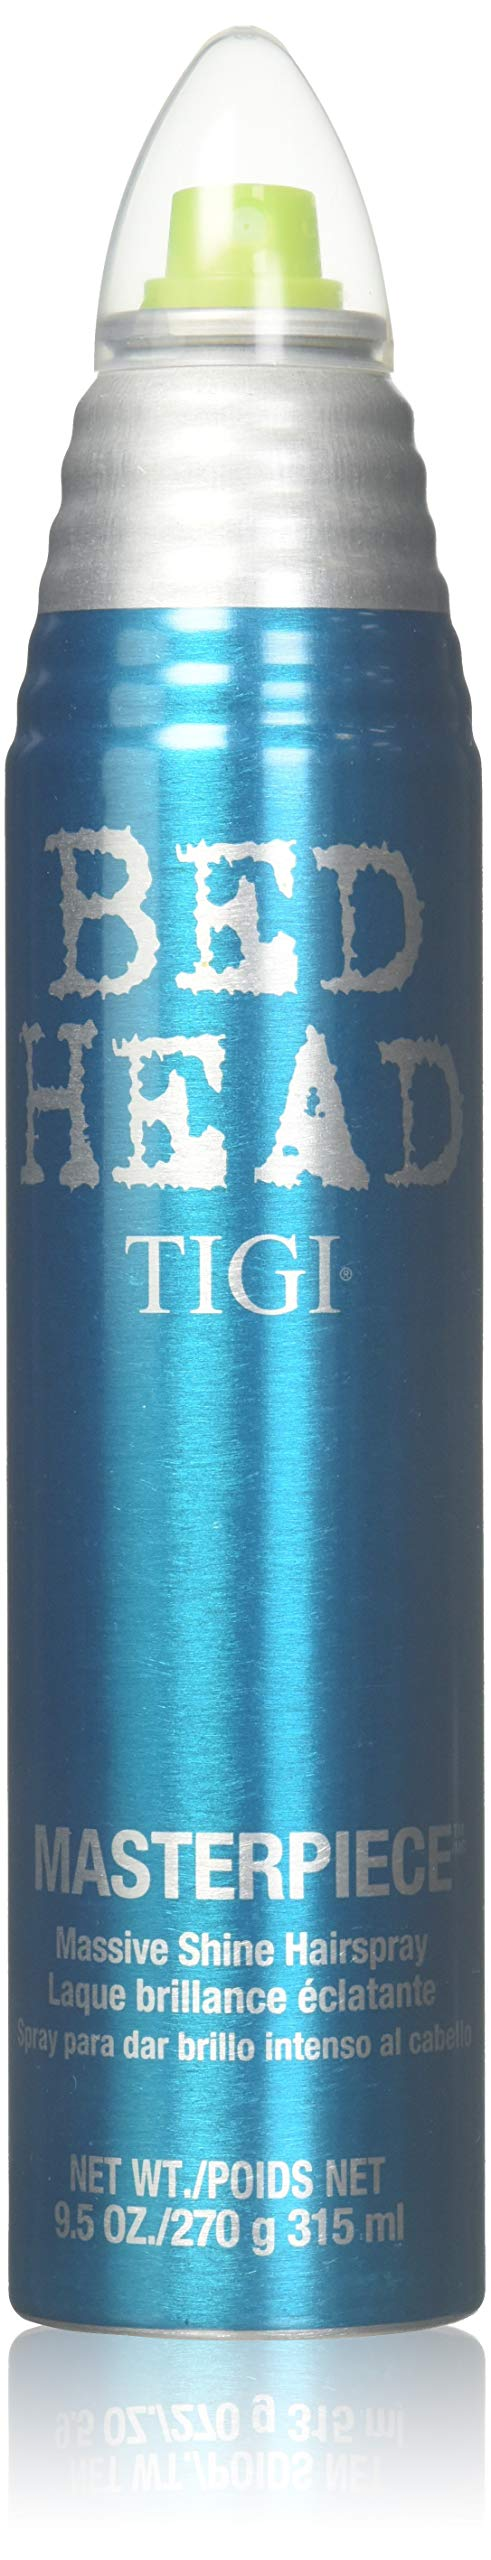 Tigi Bed Head Masterpiece Shine Hairspray (6 PACK) 315 ML by TIGI Cosmetics